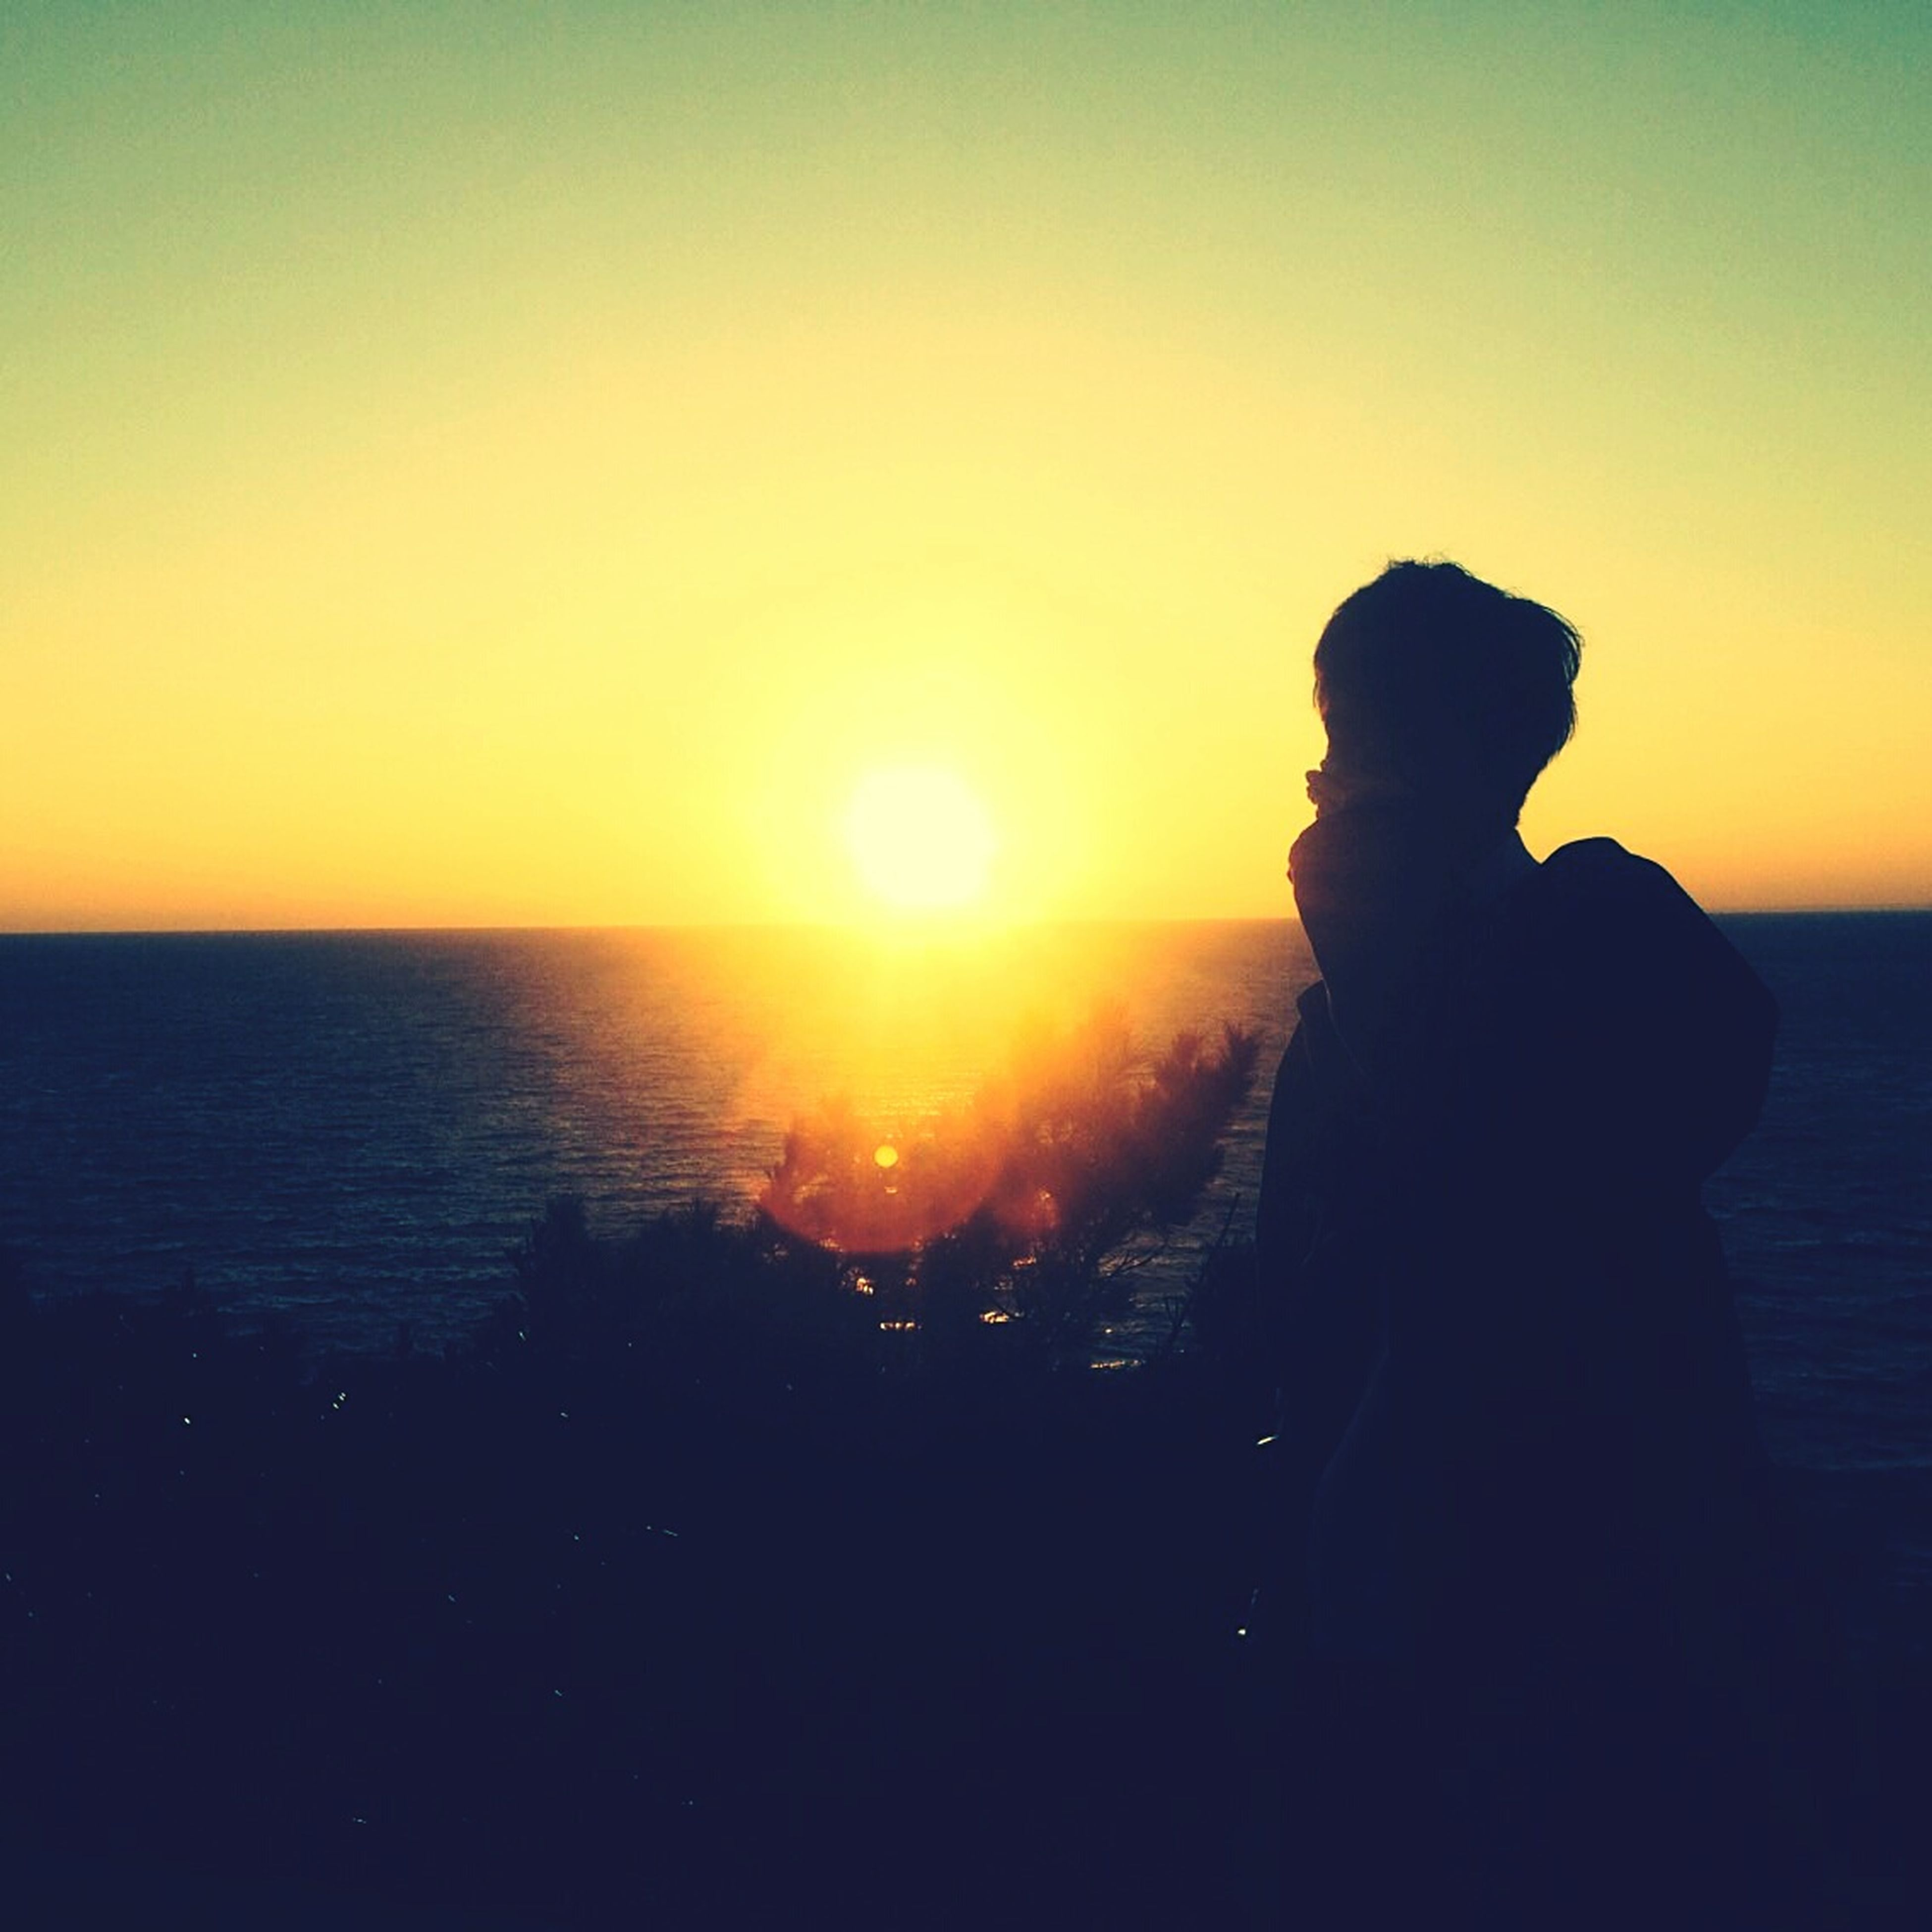 sunset, sea, horizon over water, sun, water, silhouette, leisure activity, lifestyles, orange color, scenics, beauty in nature, standing, tranquil scene, beach, person, tranquility, sky, rear view